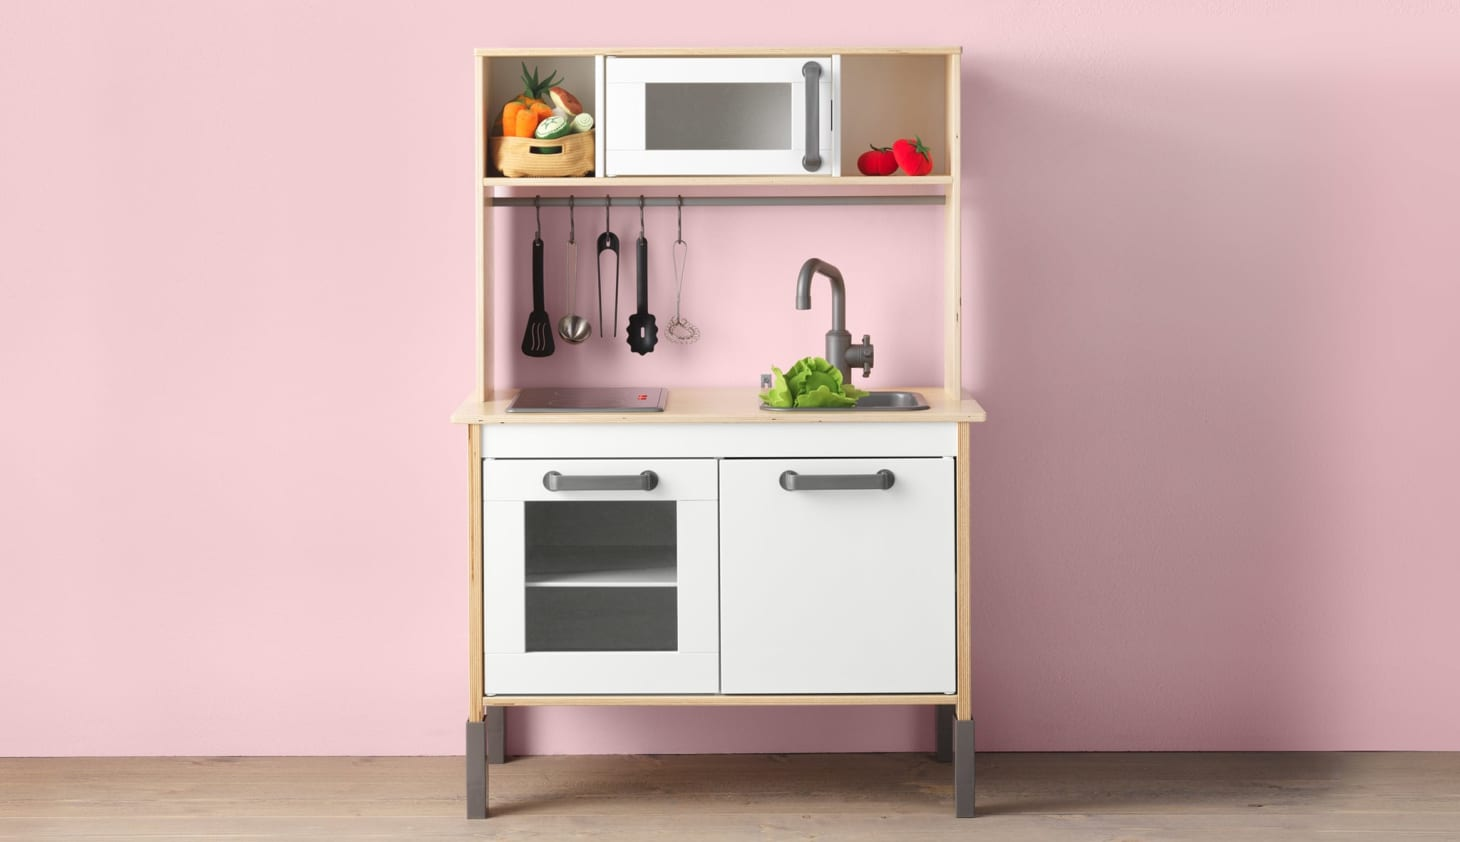 Ikea Play Kitchen 15 Duktig Hacks Apartment Therapy